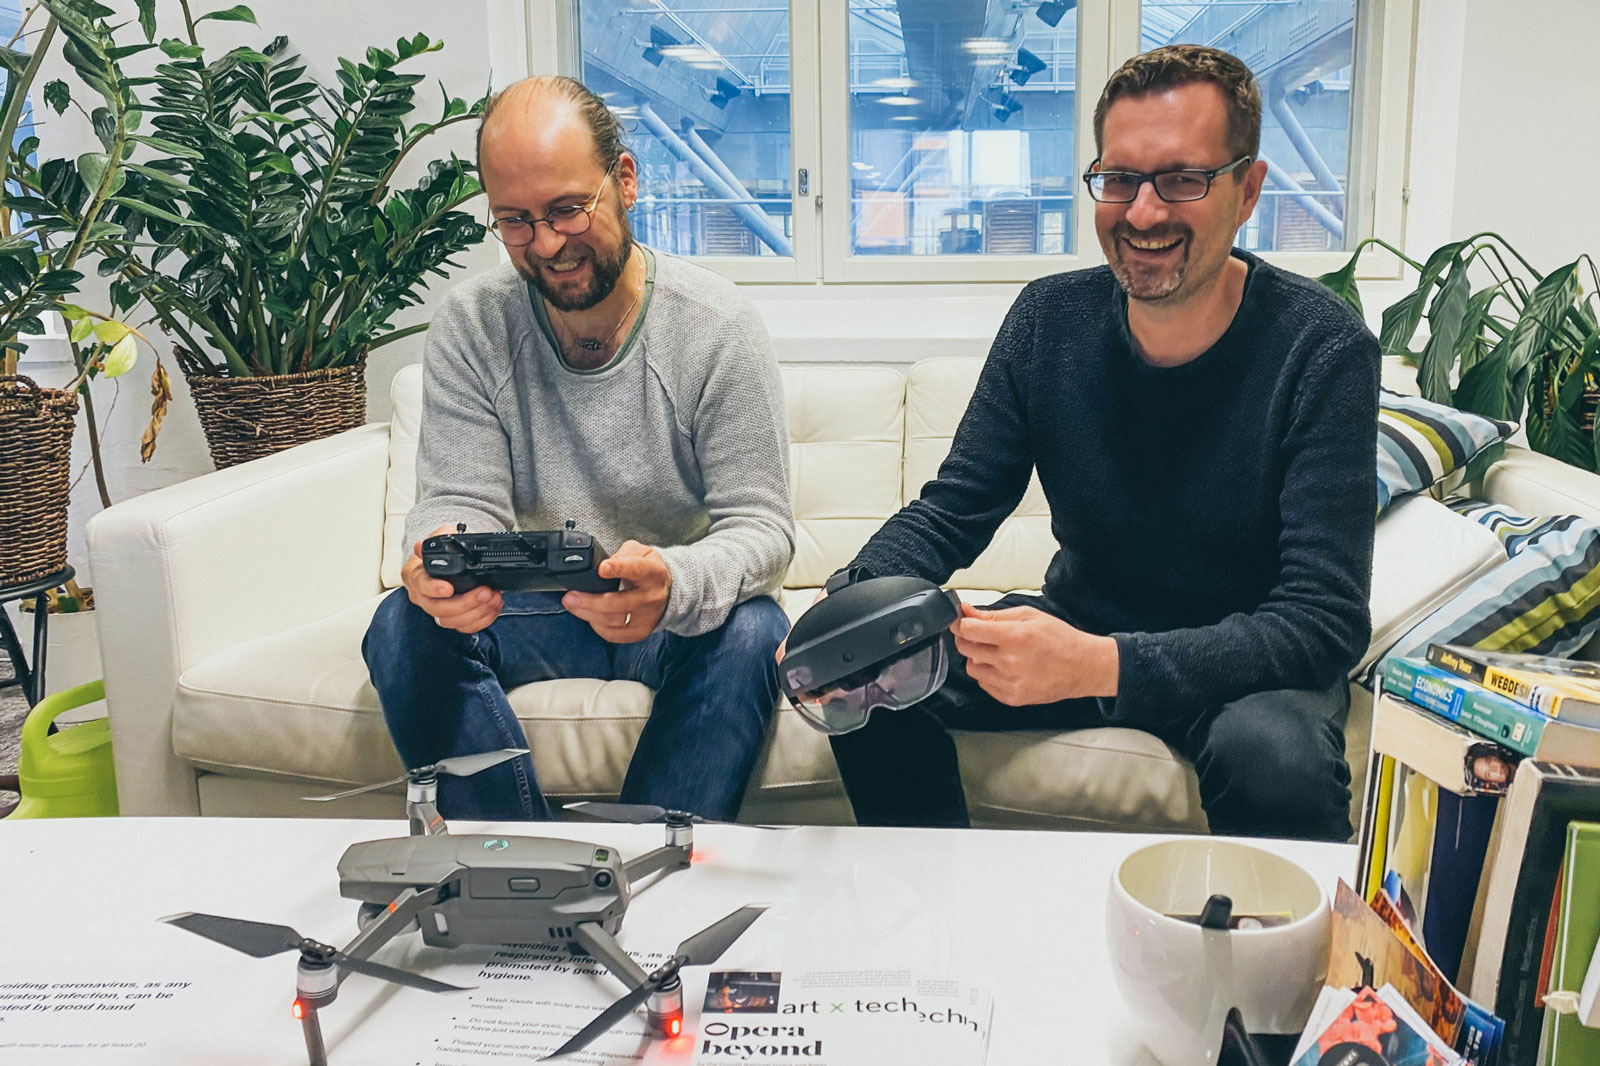 Lassi Immonen and Hannu Lesonen from Anarky Labs. Both are wearing glasses, solid-coloured clothes, and are smiling. In front of them on the table is a small drone.